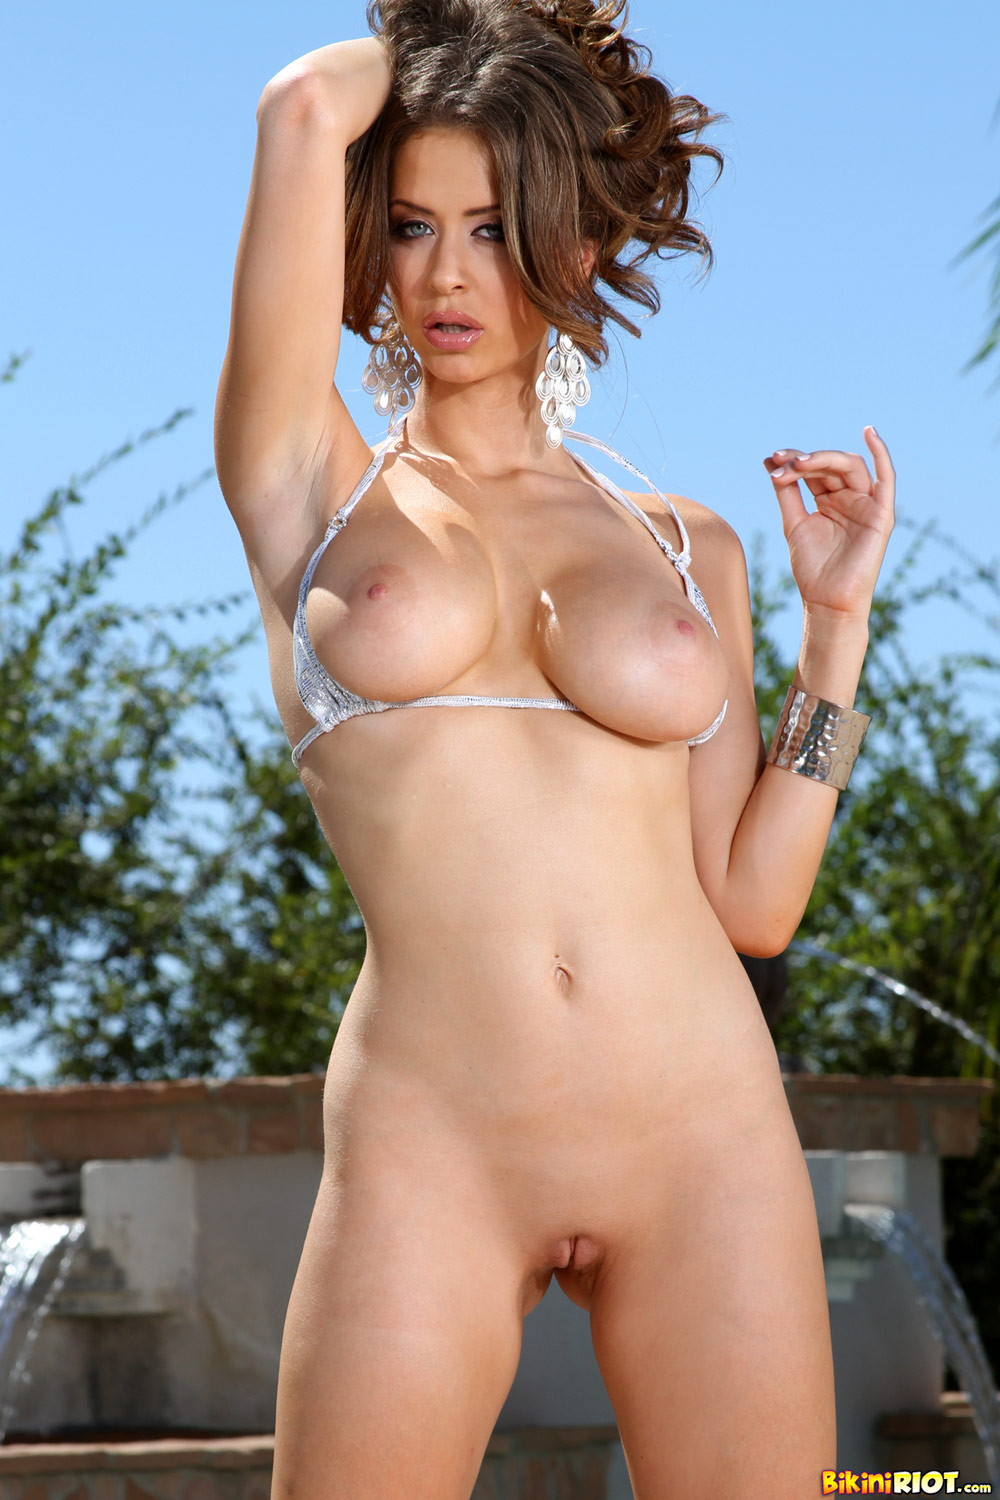 Apologise, but, emily addison bikini riot think